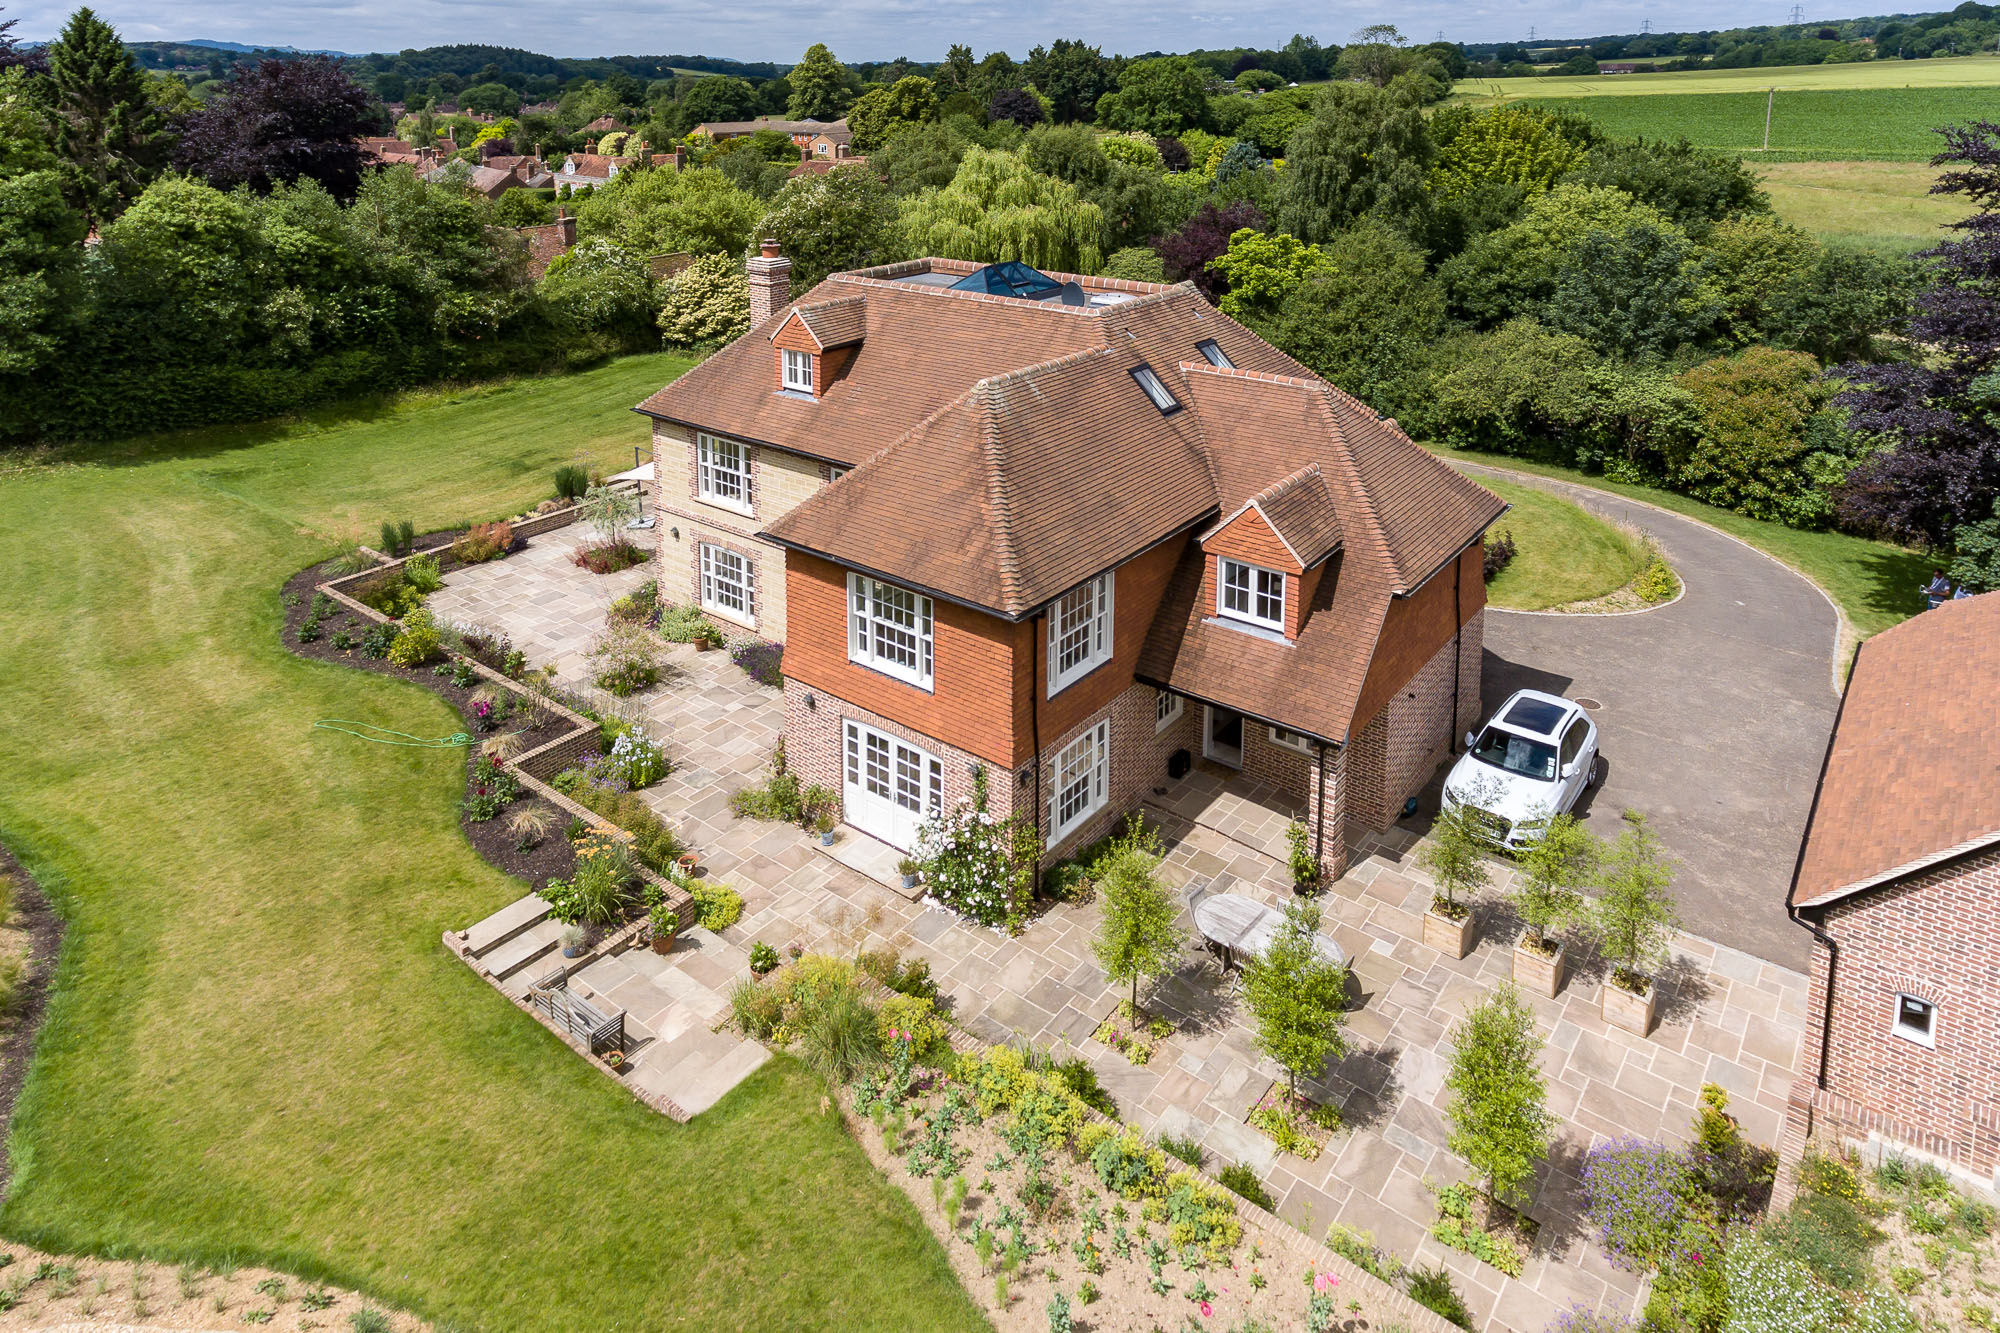 jonathan bond aerial photographer, detached residential house garden view